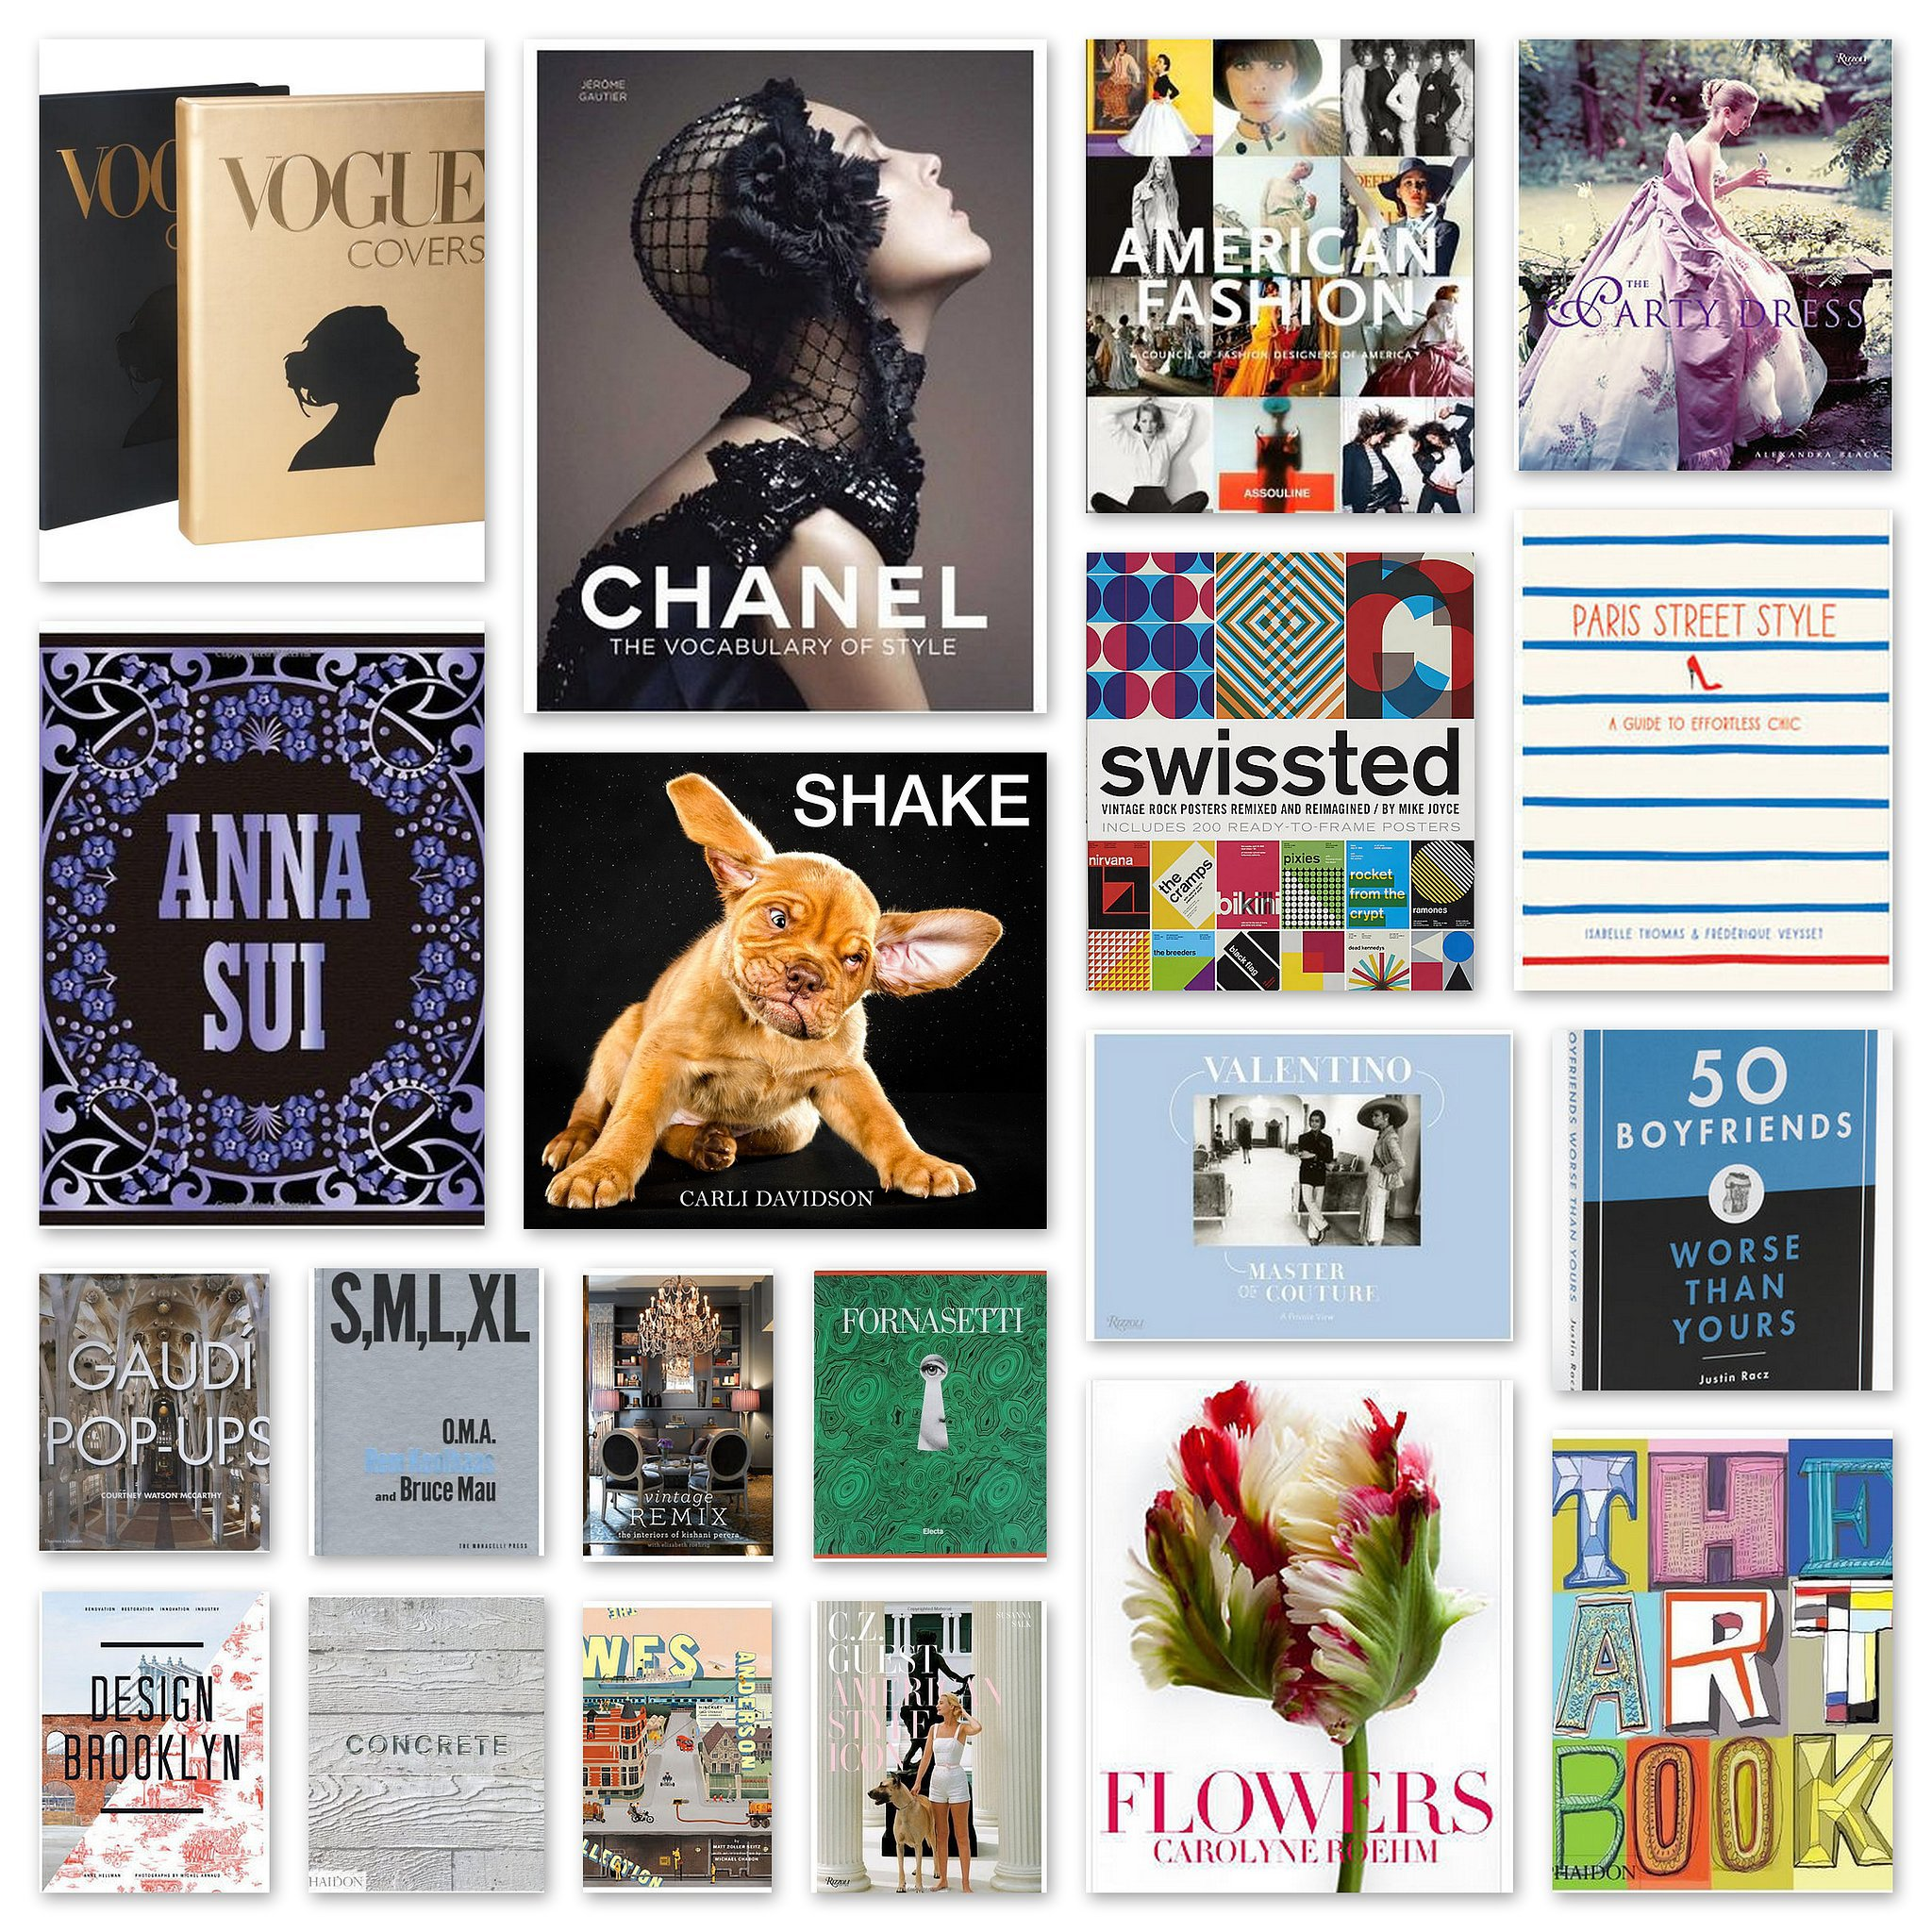 Coffee Table Books for the Design Inclined